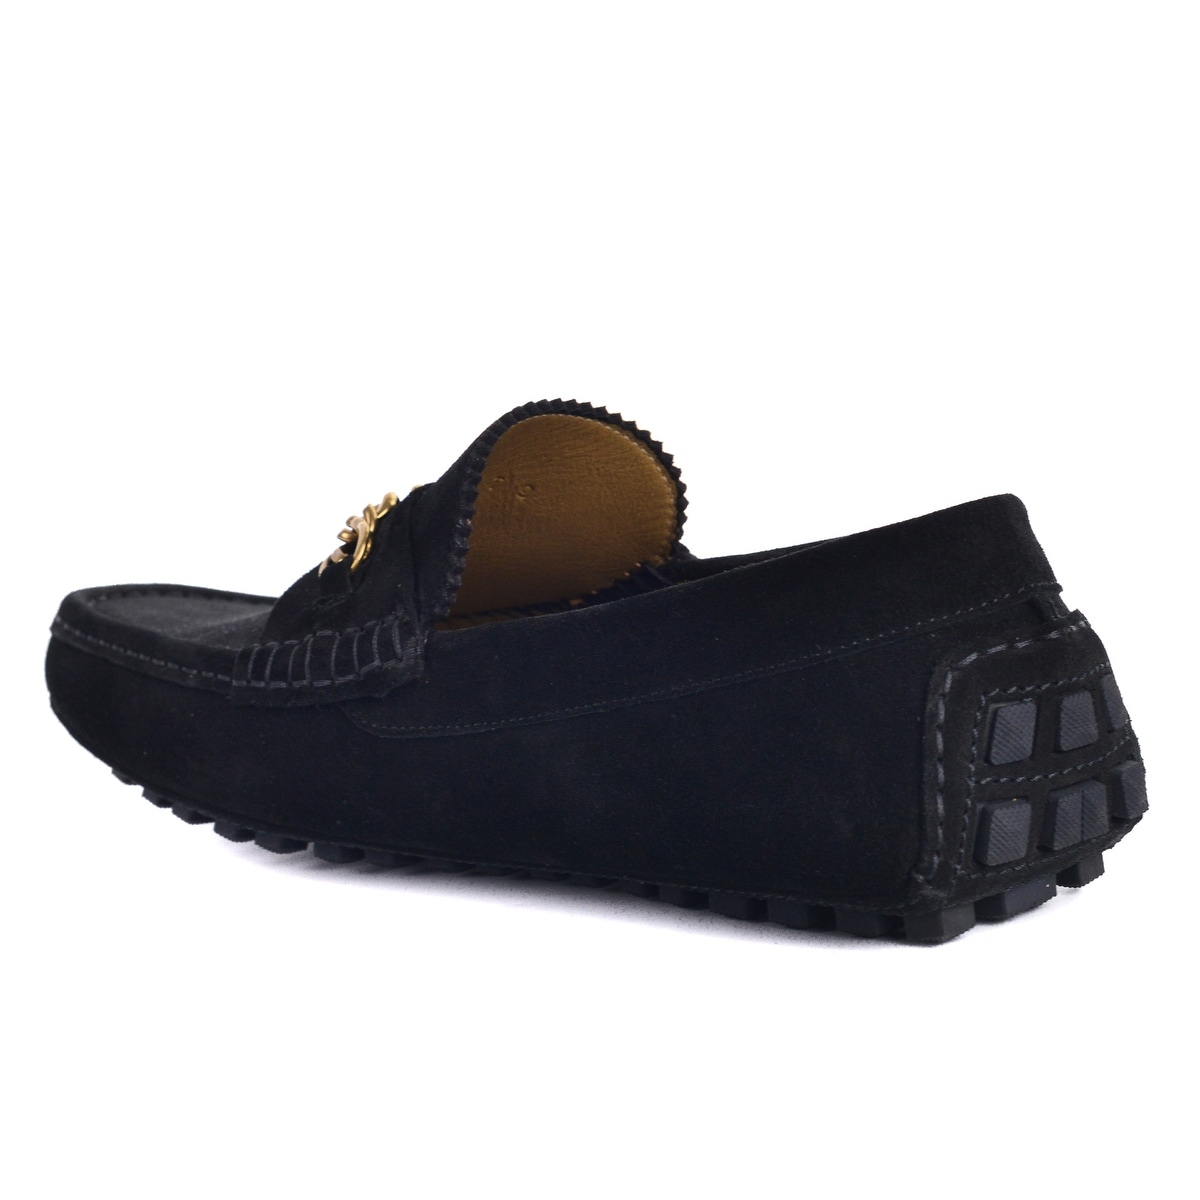 0a47ecccb Shop Tom Ford Mens Black Suede York Chain Driver Loafers - Free Shipping  Today - Overstock - 26397615